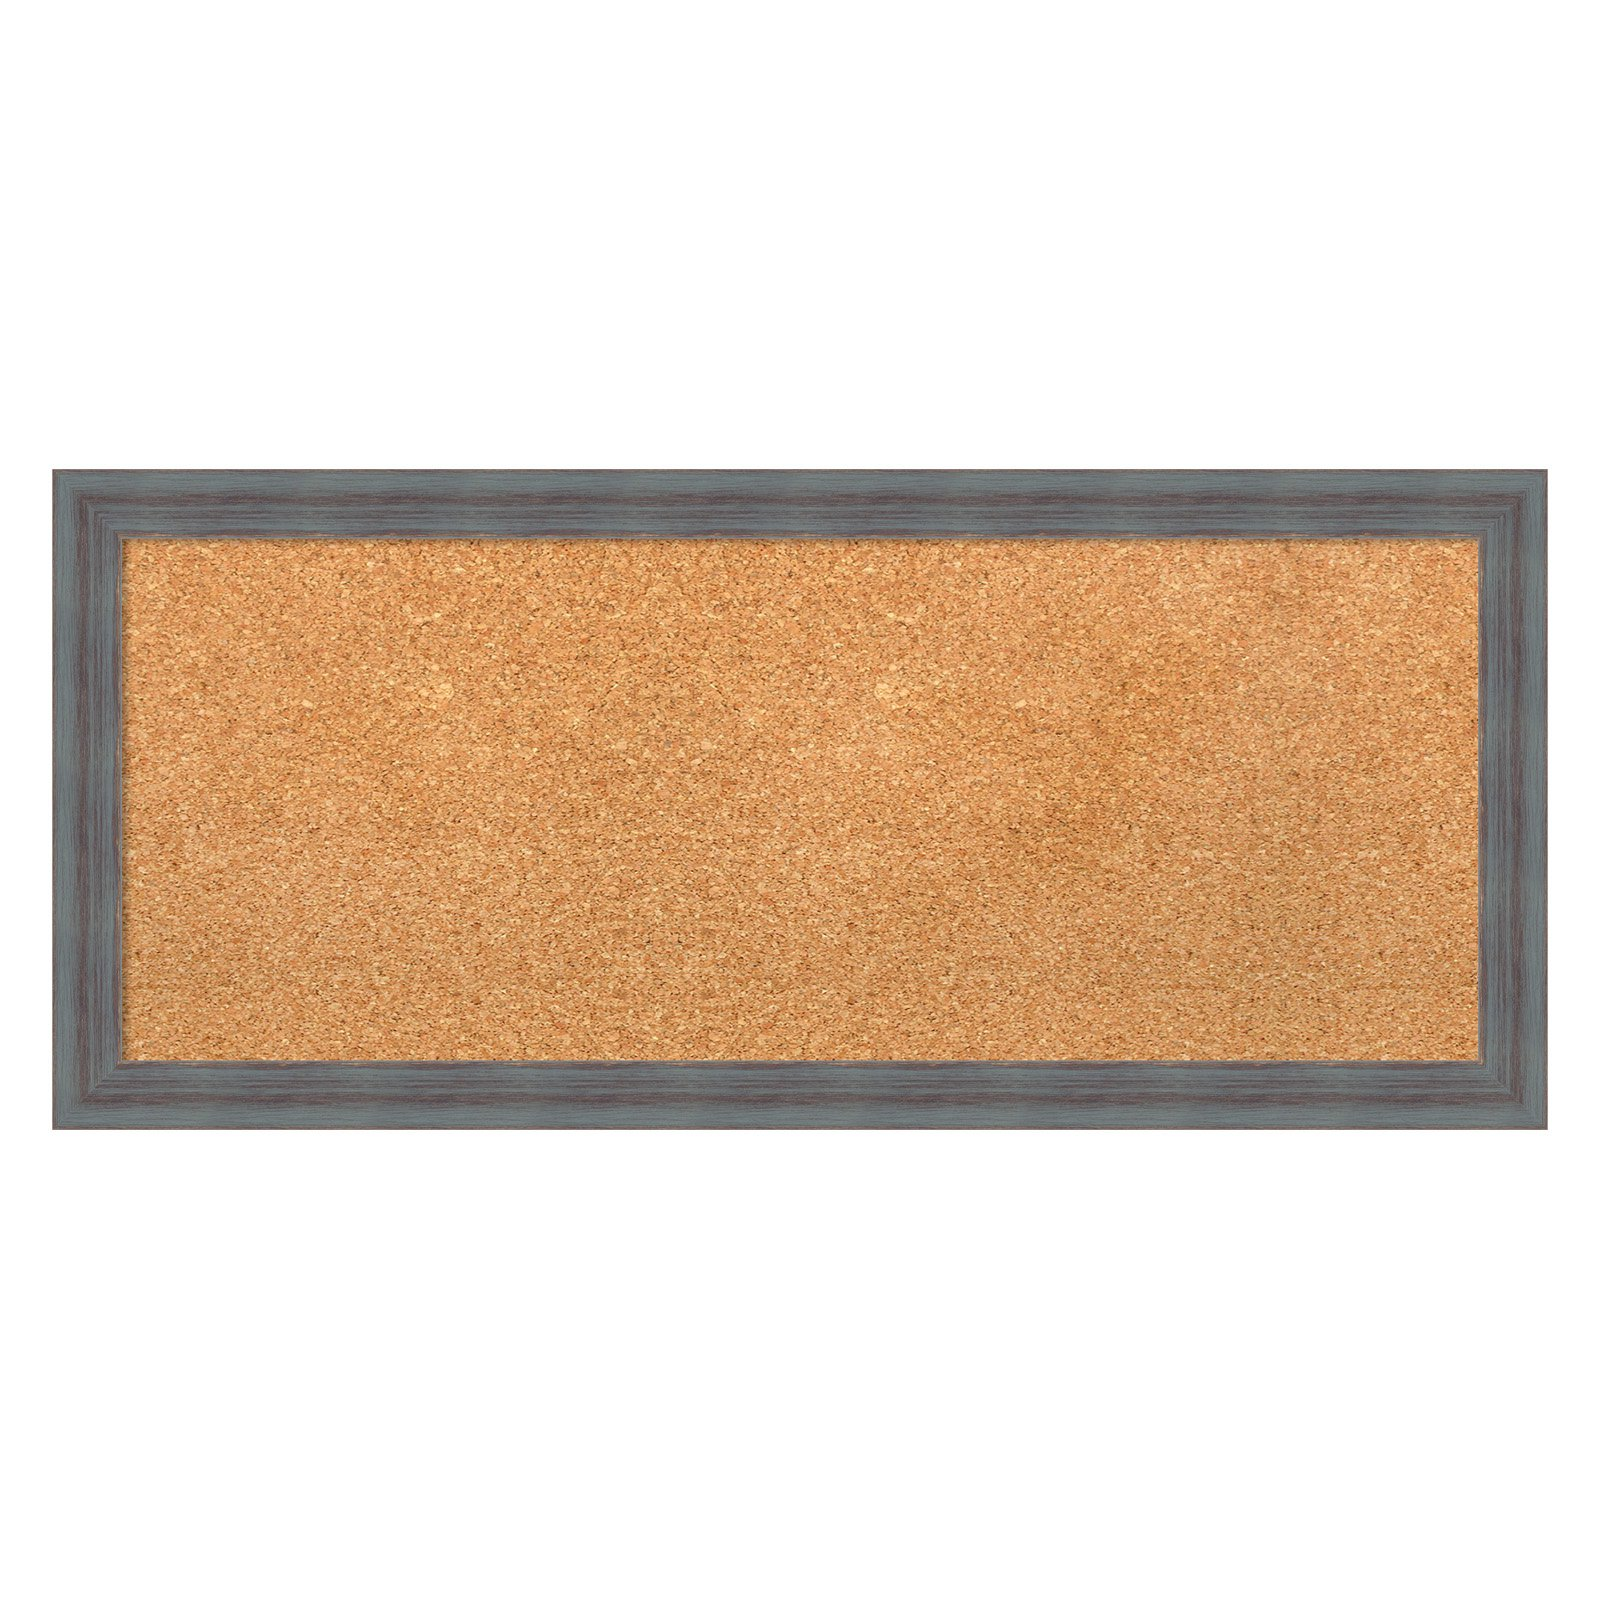 Amanti Art Dixie Grey Rustic Framed Cork Board